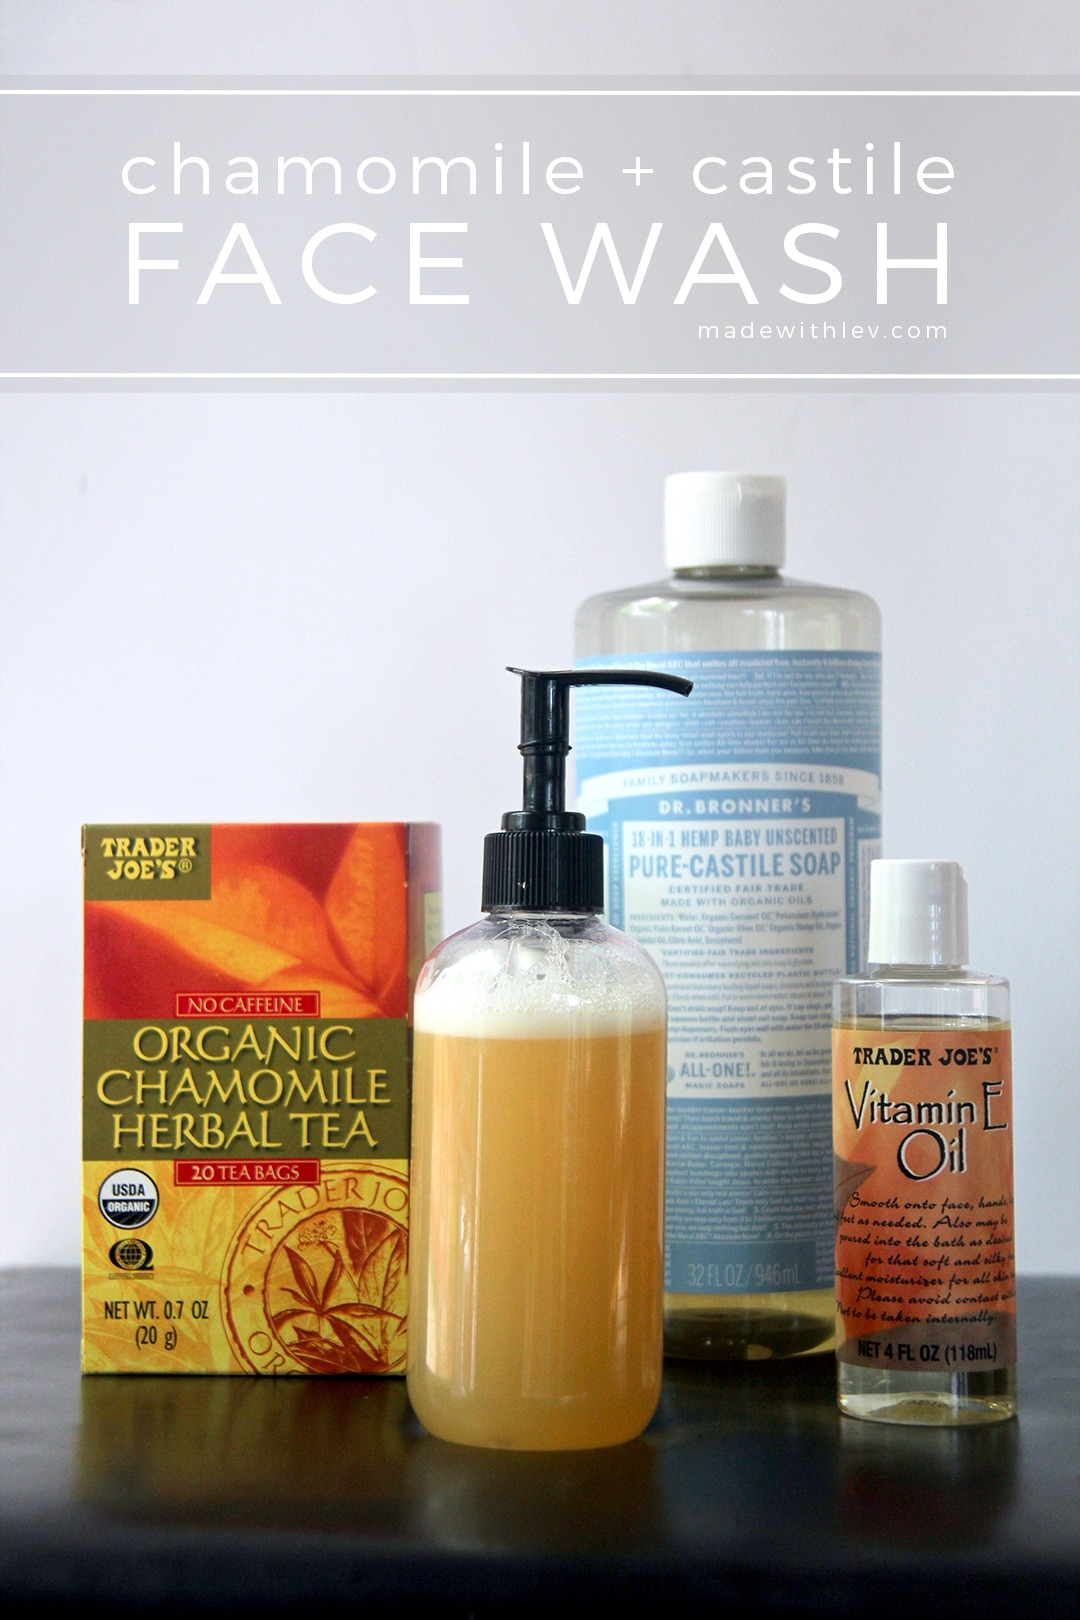 Chamomile + Castile Face Wash: This gentle and calming face wash is made with simple ingredients like chamomile tea, Castile soap, vitamin E oil, and essential oils.